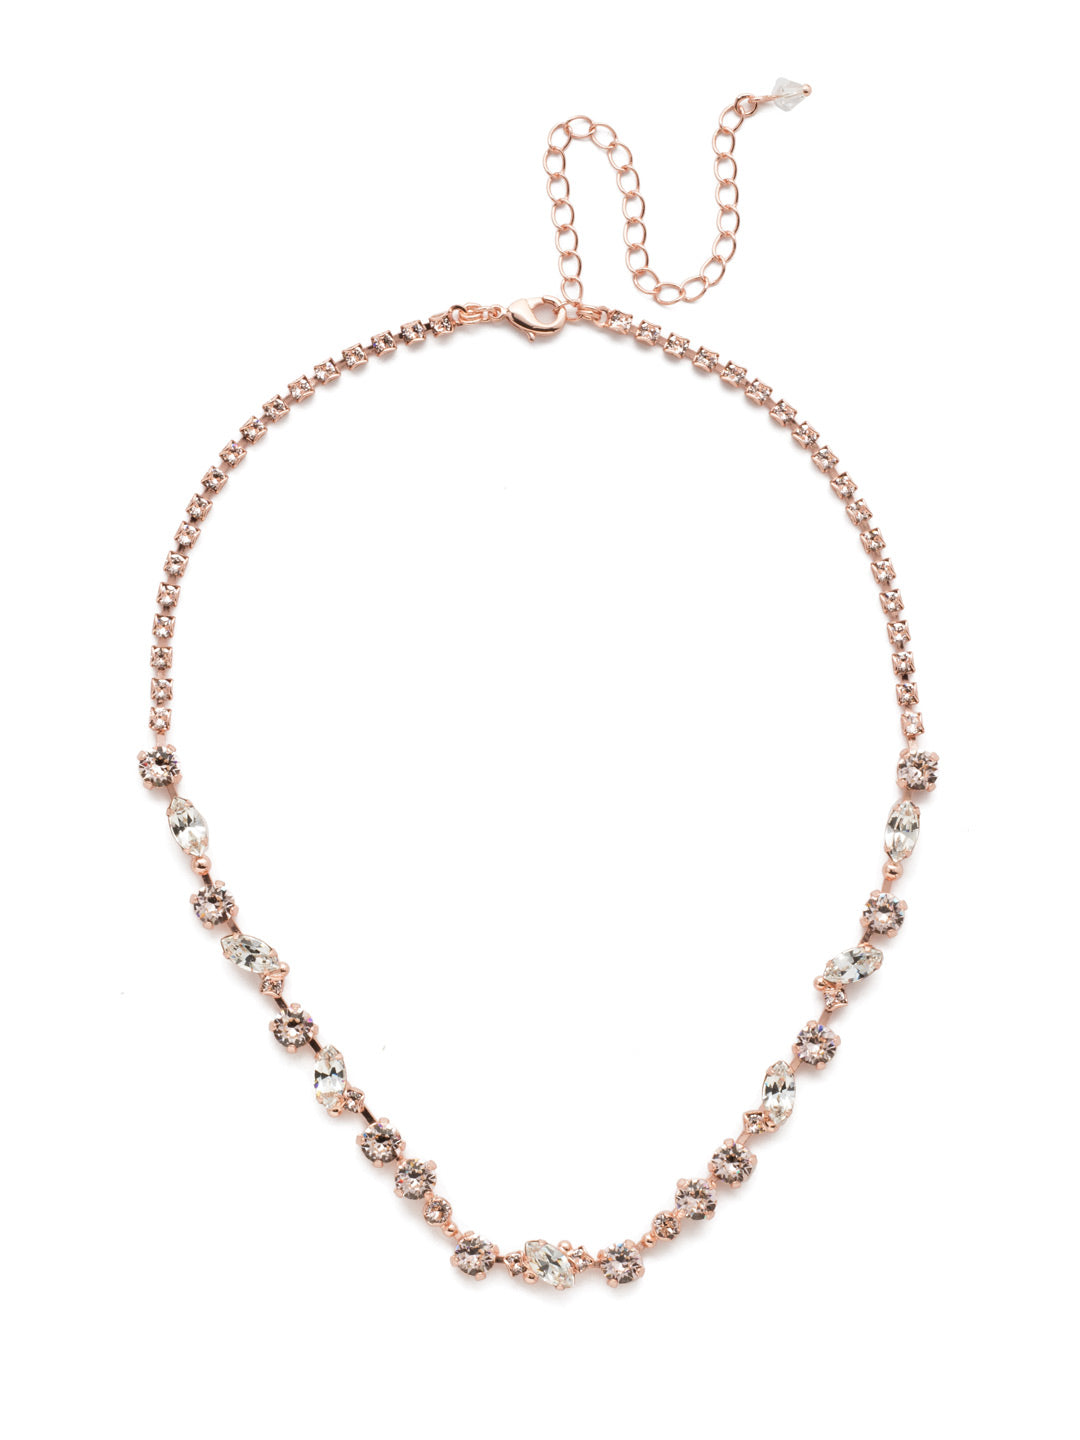 Simply Stated Tennis Necklace - NDN1RGSNB